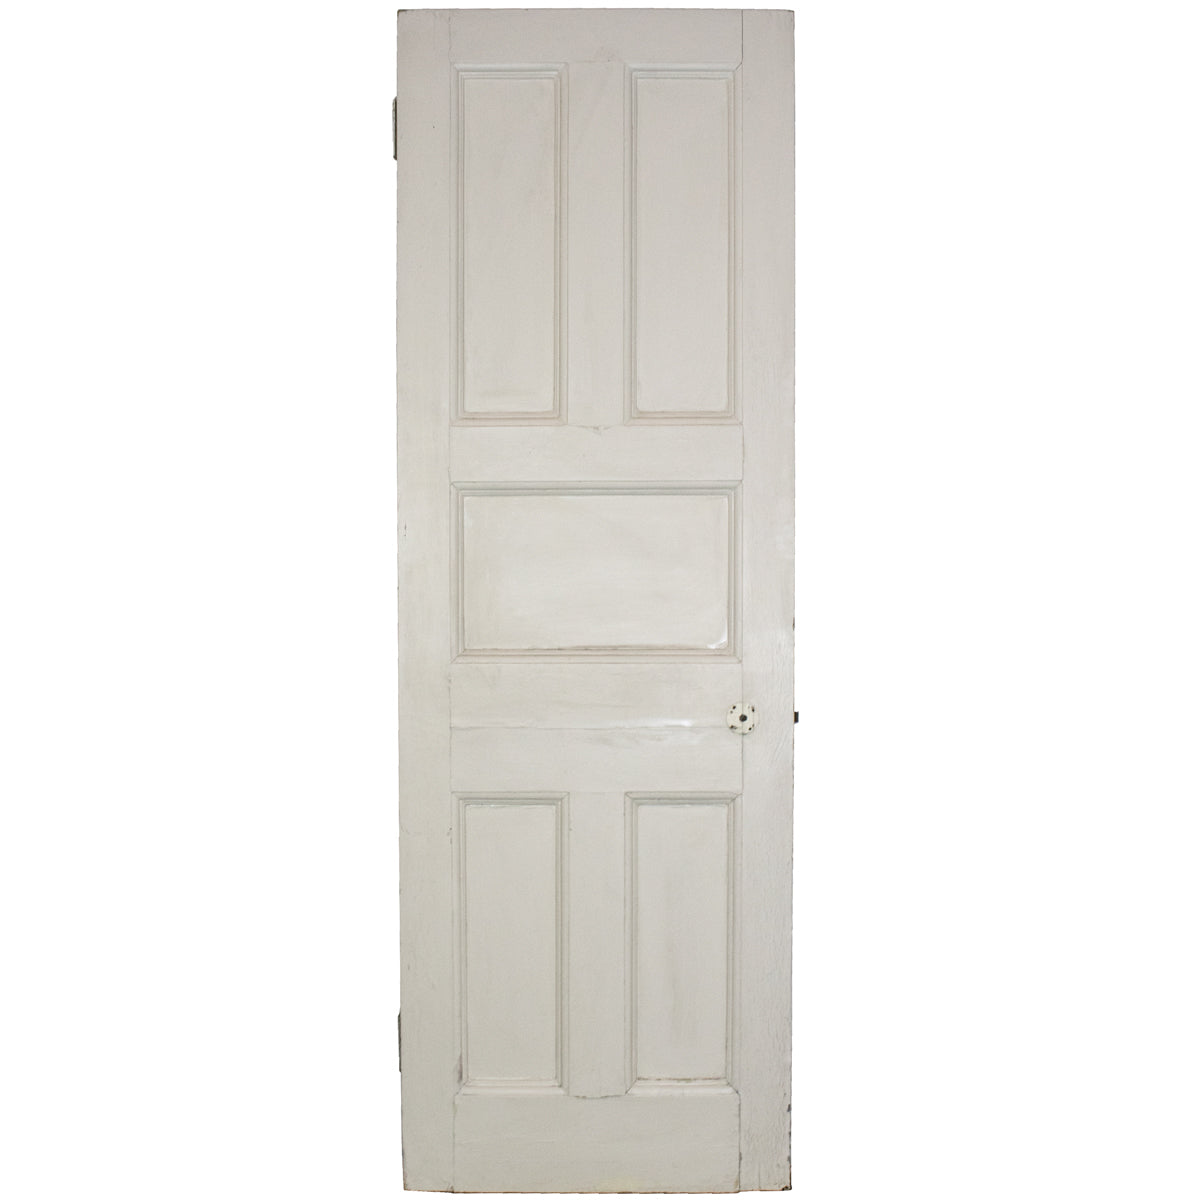 Antique Victorian Five Panel Door - 209cm x 69cm